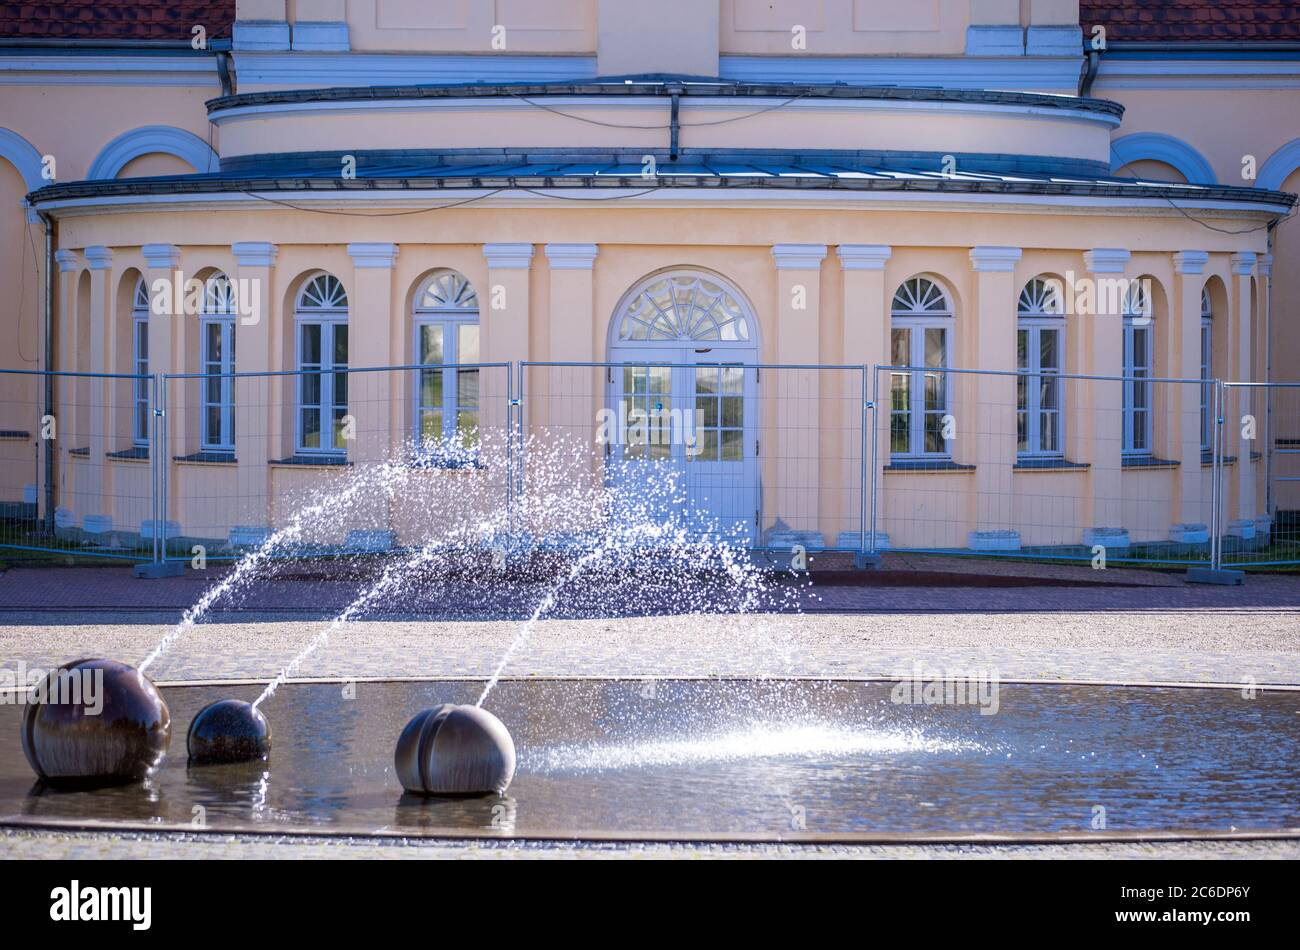 Neustrelitz, Germany. 23rd June, 2020. The former orangery in the royal residence. Credit: Jens Büttner/dpa-Zentralbild/ZB/dpa/Alamy Live News Stock Photo